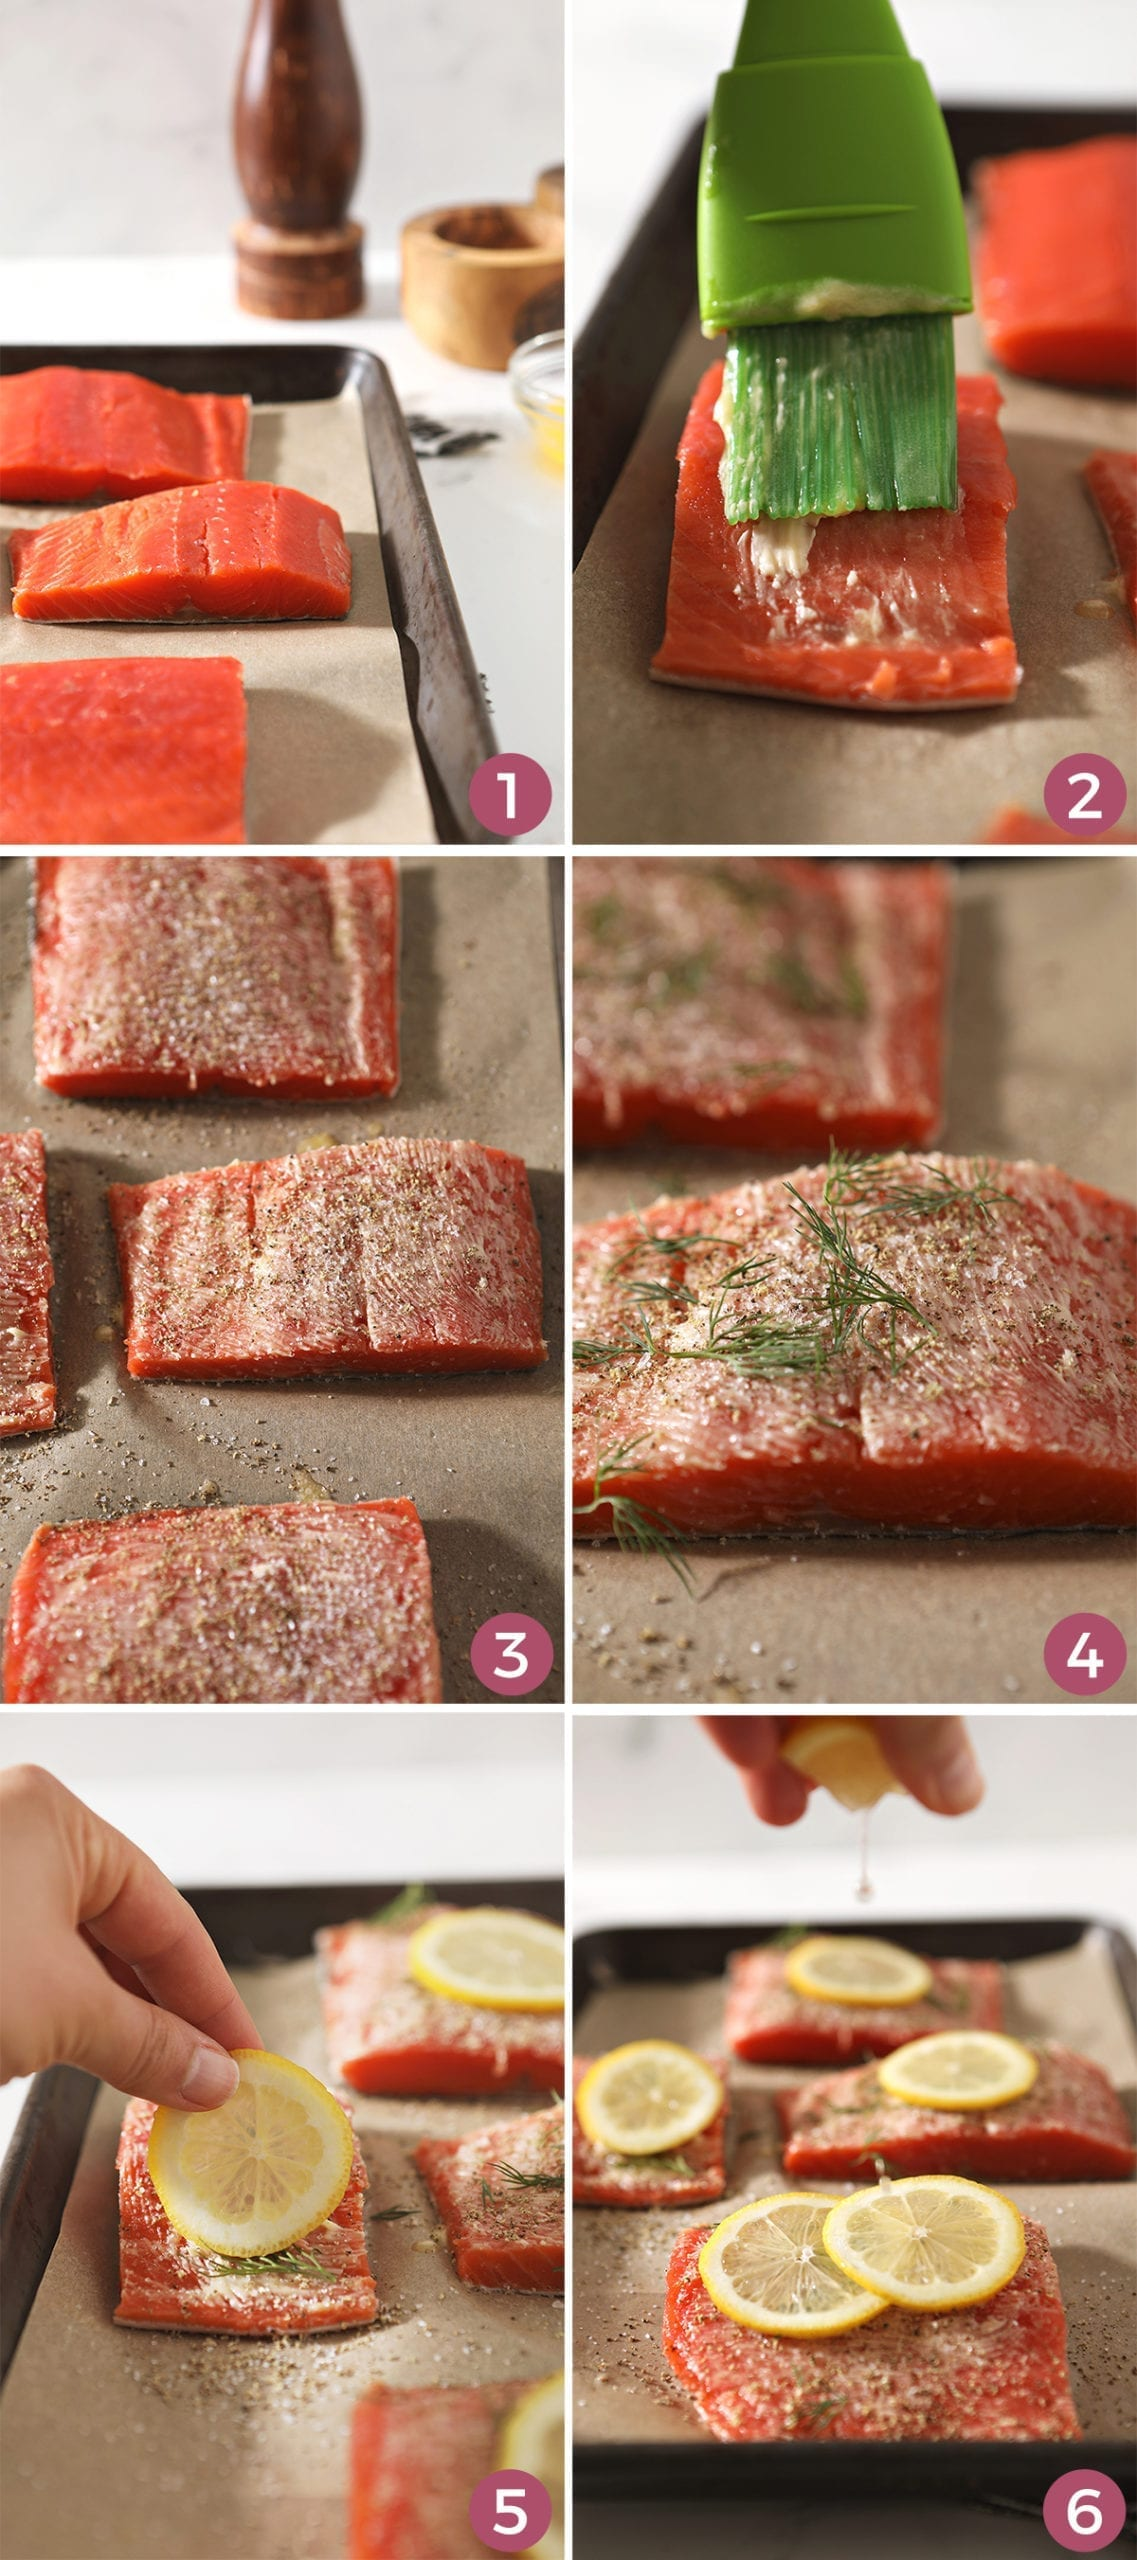 A collage of six images showing how salmon filets should look as you prepare them to bake in the oven, including brushing on butter, sprinkling with salt and pepper, adding fresh dill, adding a lemon round and a squeeze of lemon juice